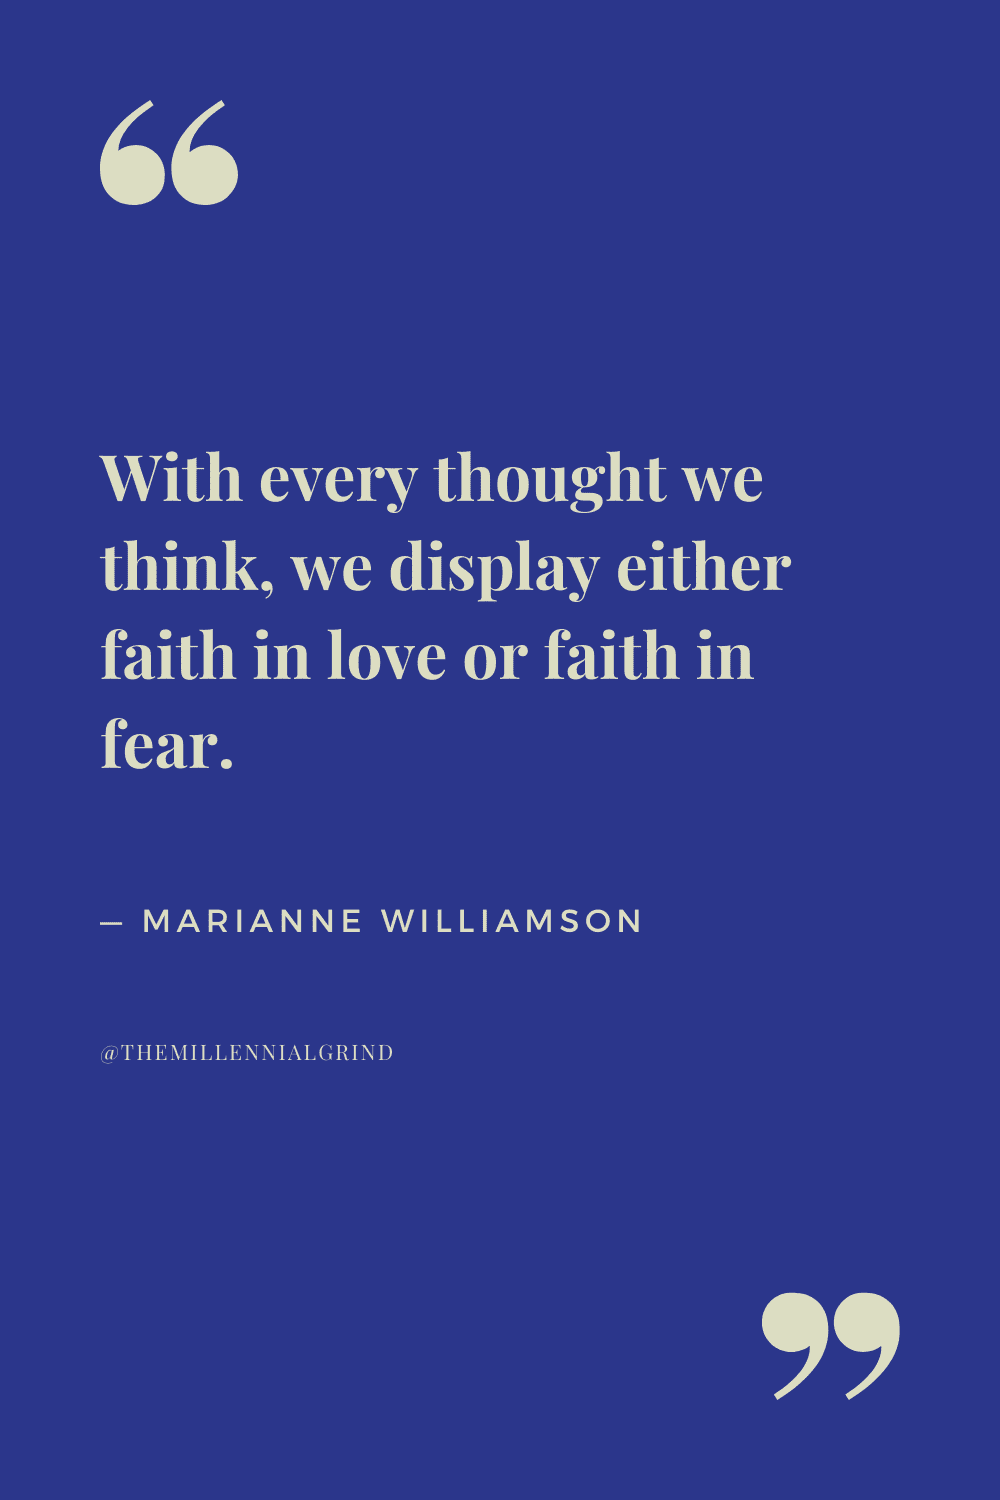 Quotes from The Law of Divine Compensation by Marianne WilliamsonQuotes from The Law of Divine Compensation by Marianne Williamson